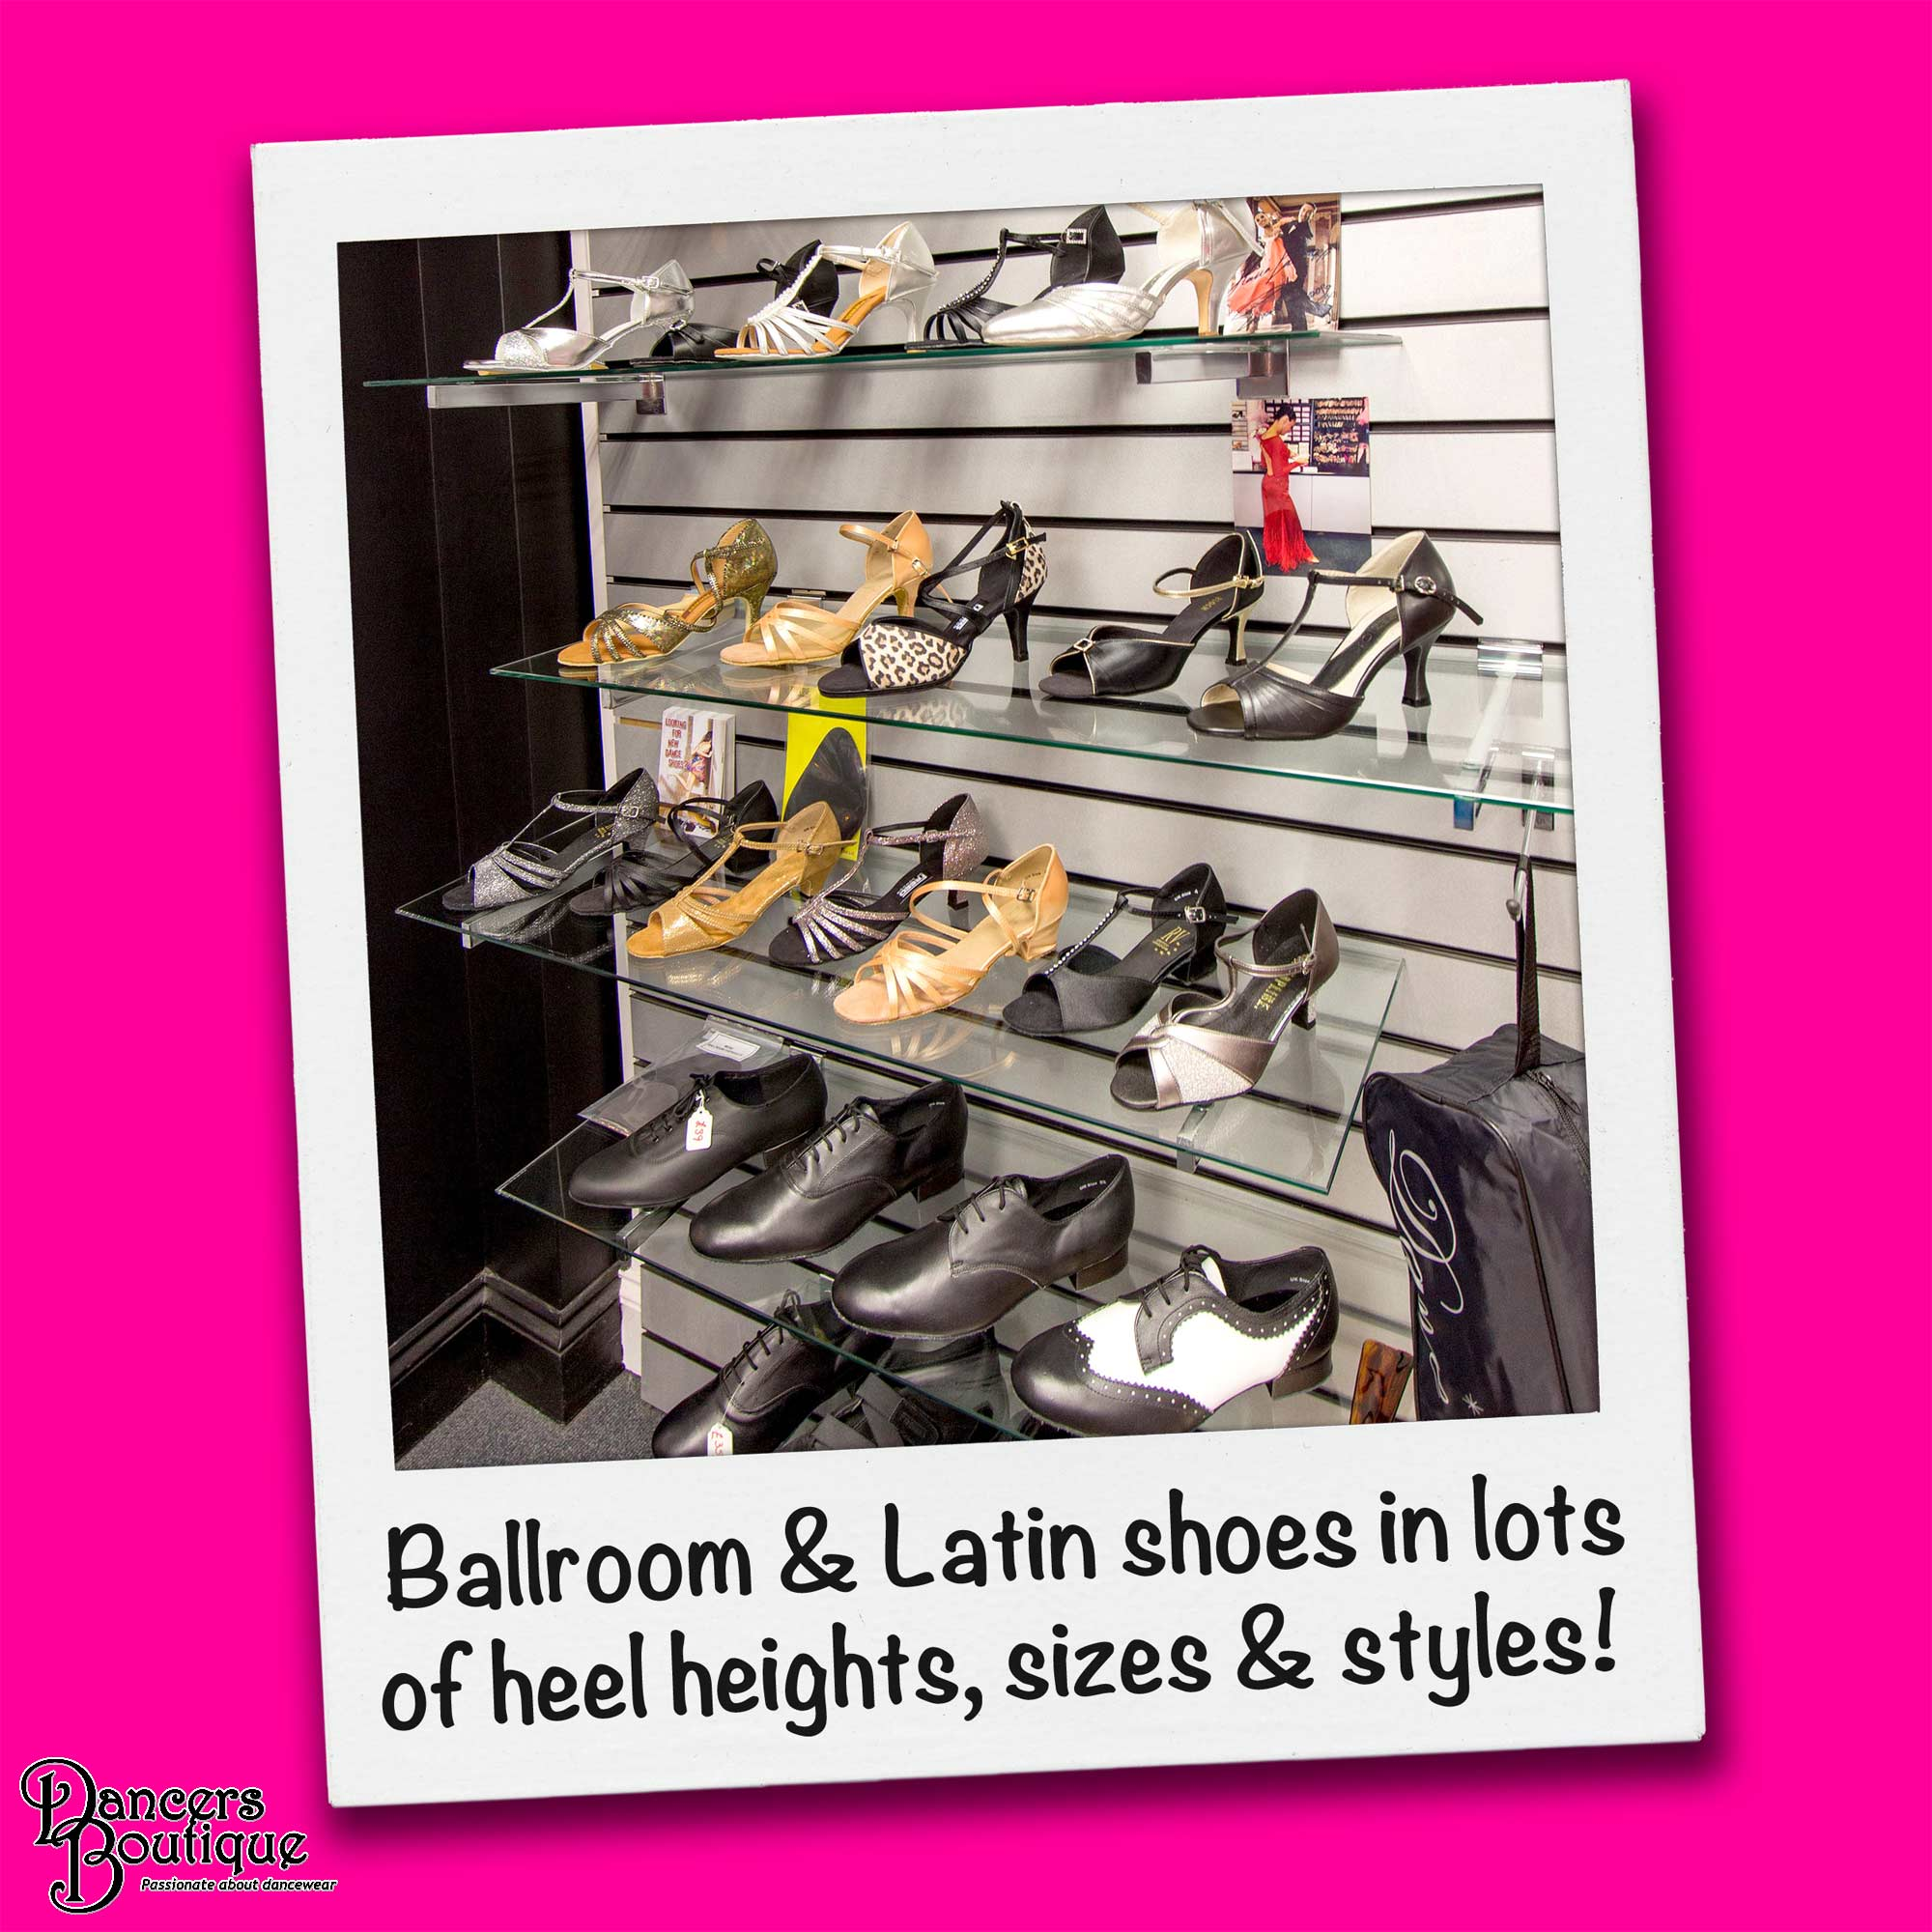 b37abef3e Ballroom, Latin and Salsa shoes for dance classes and experience dancers  for men and women ...